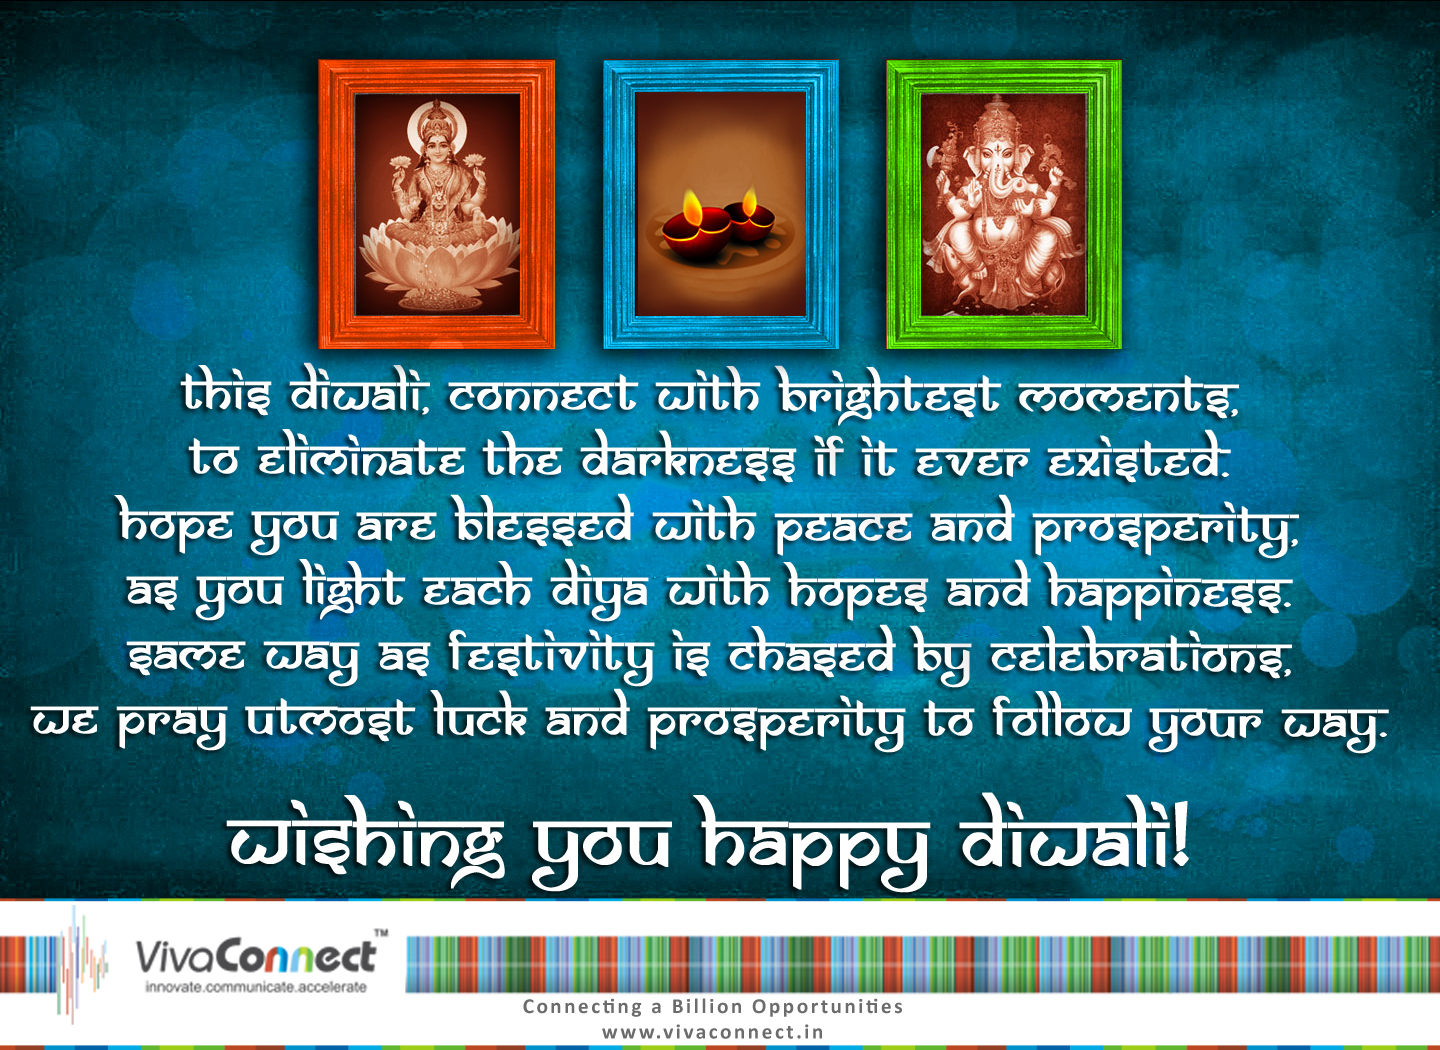 Happy Diwali And A Prosperous New Year Vivaconnect